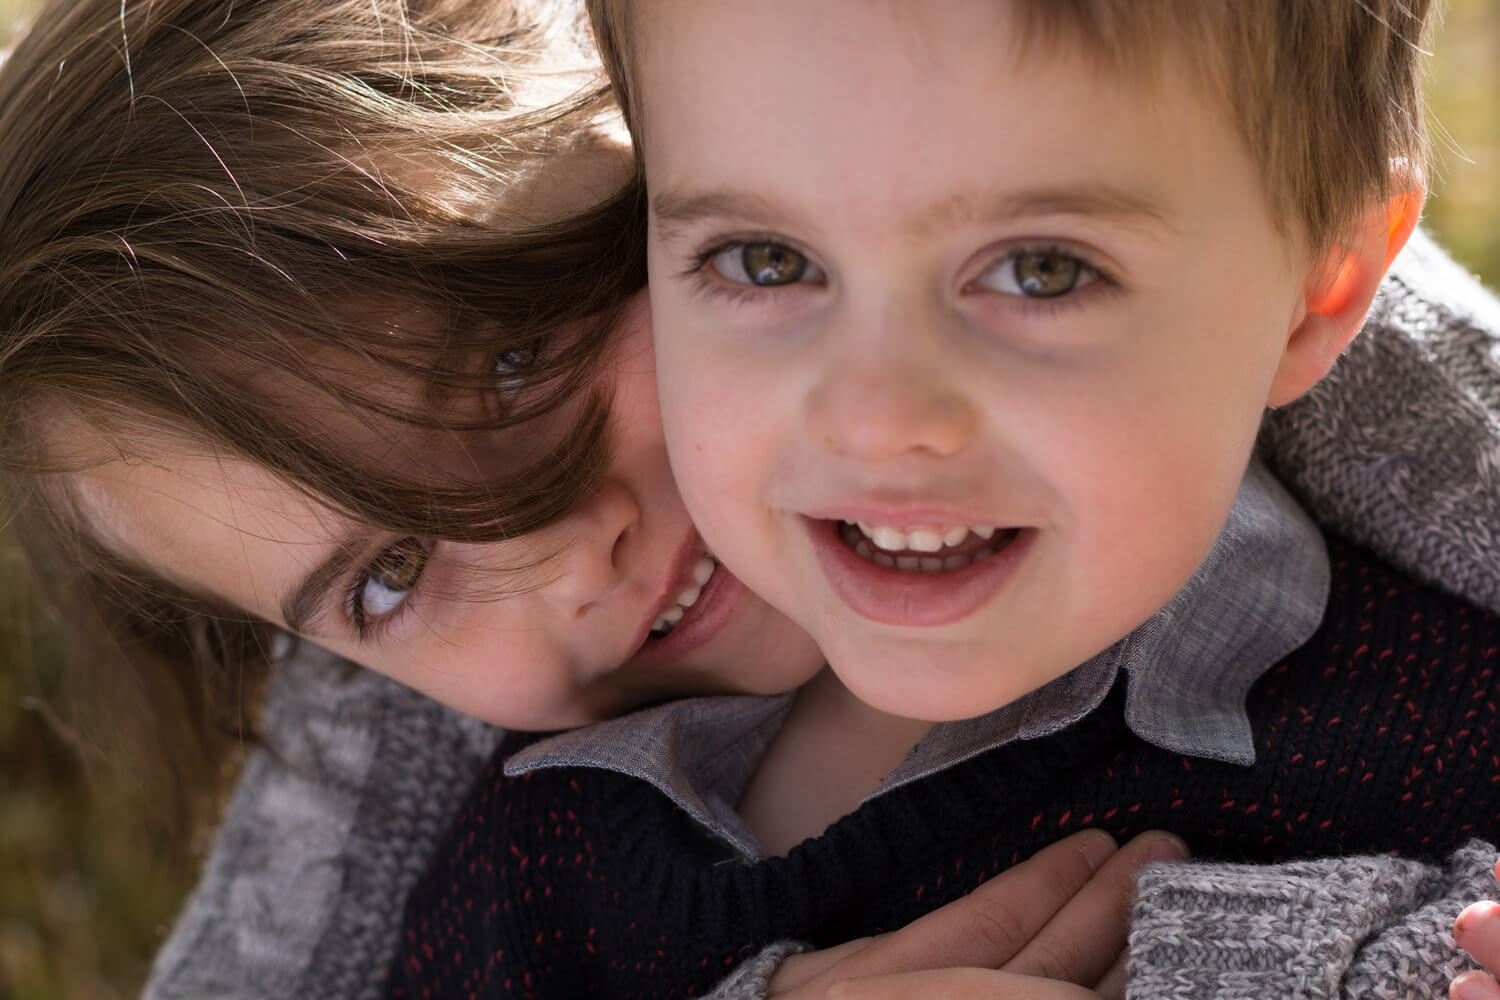 Portrait of a brother and sister hugging, both are looking into the camera